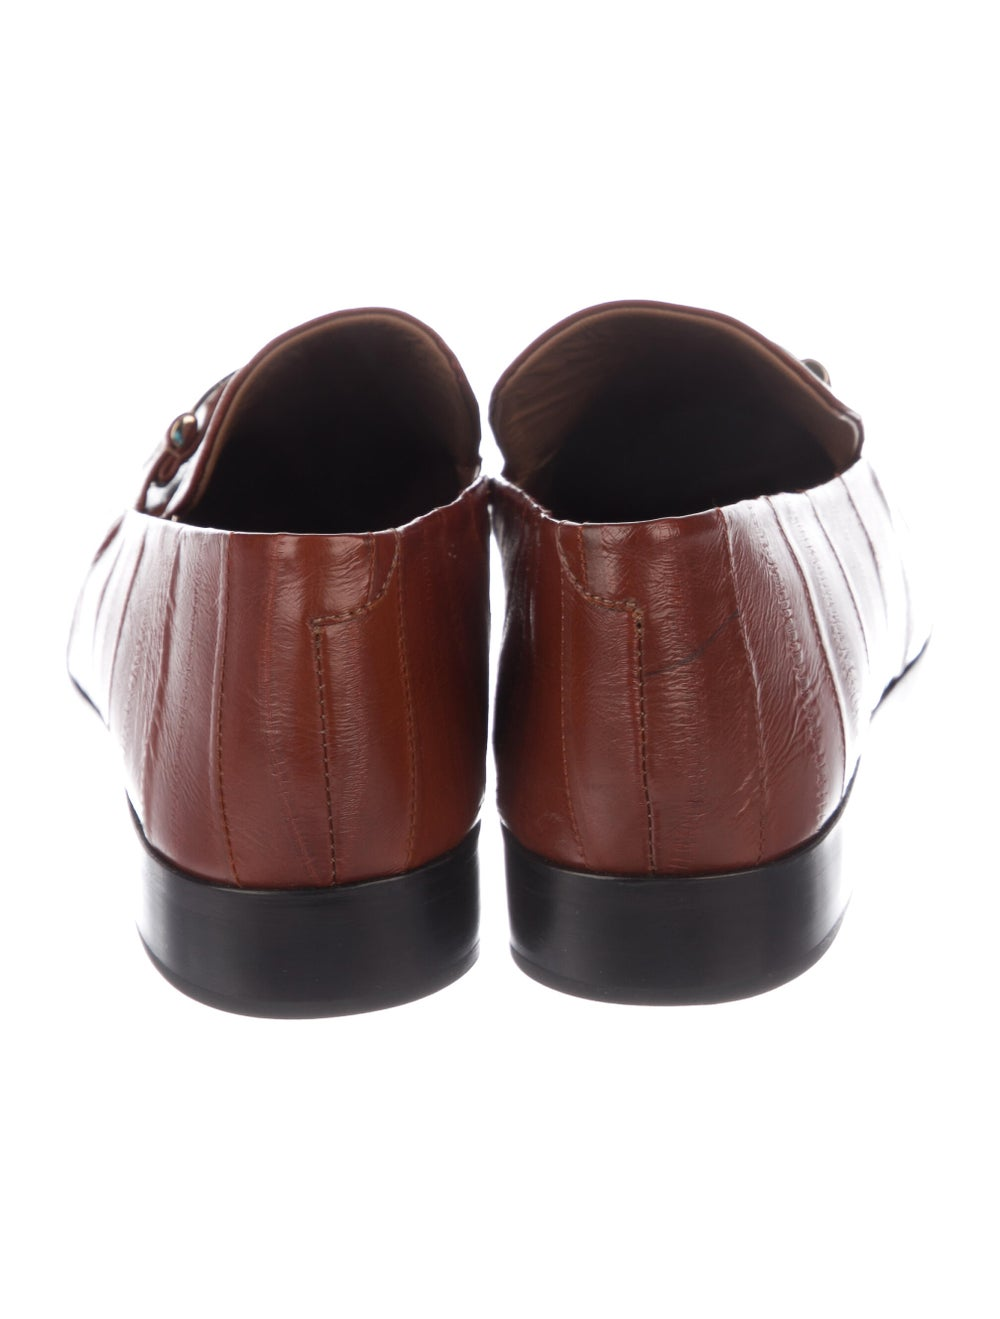 NewbarK Eel Skin Loafers Brown - image 4